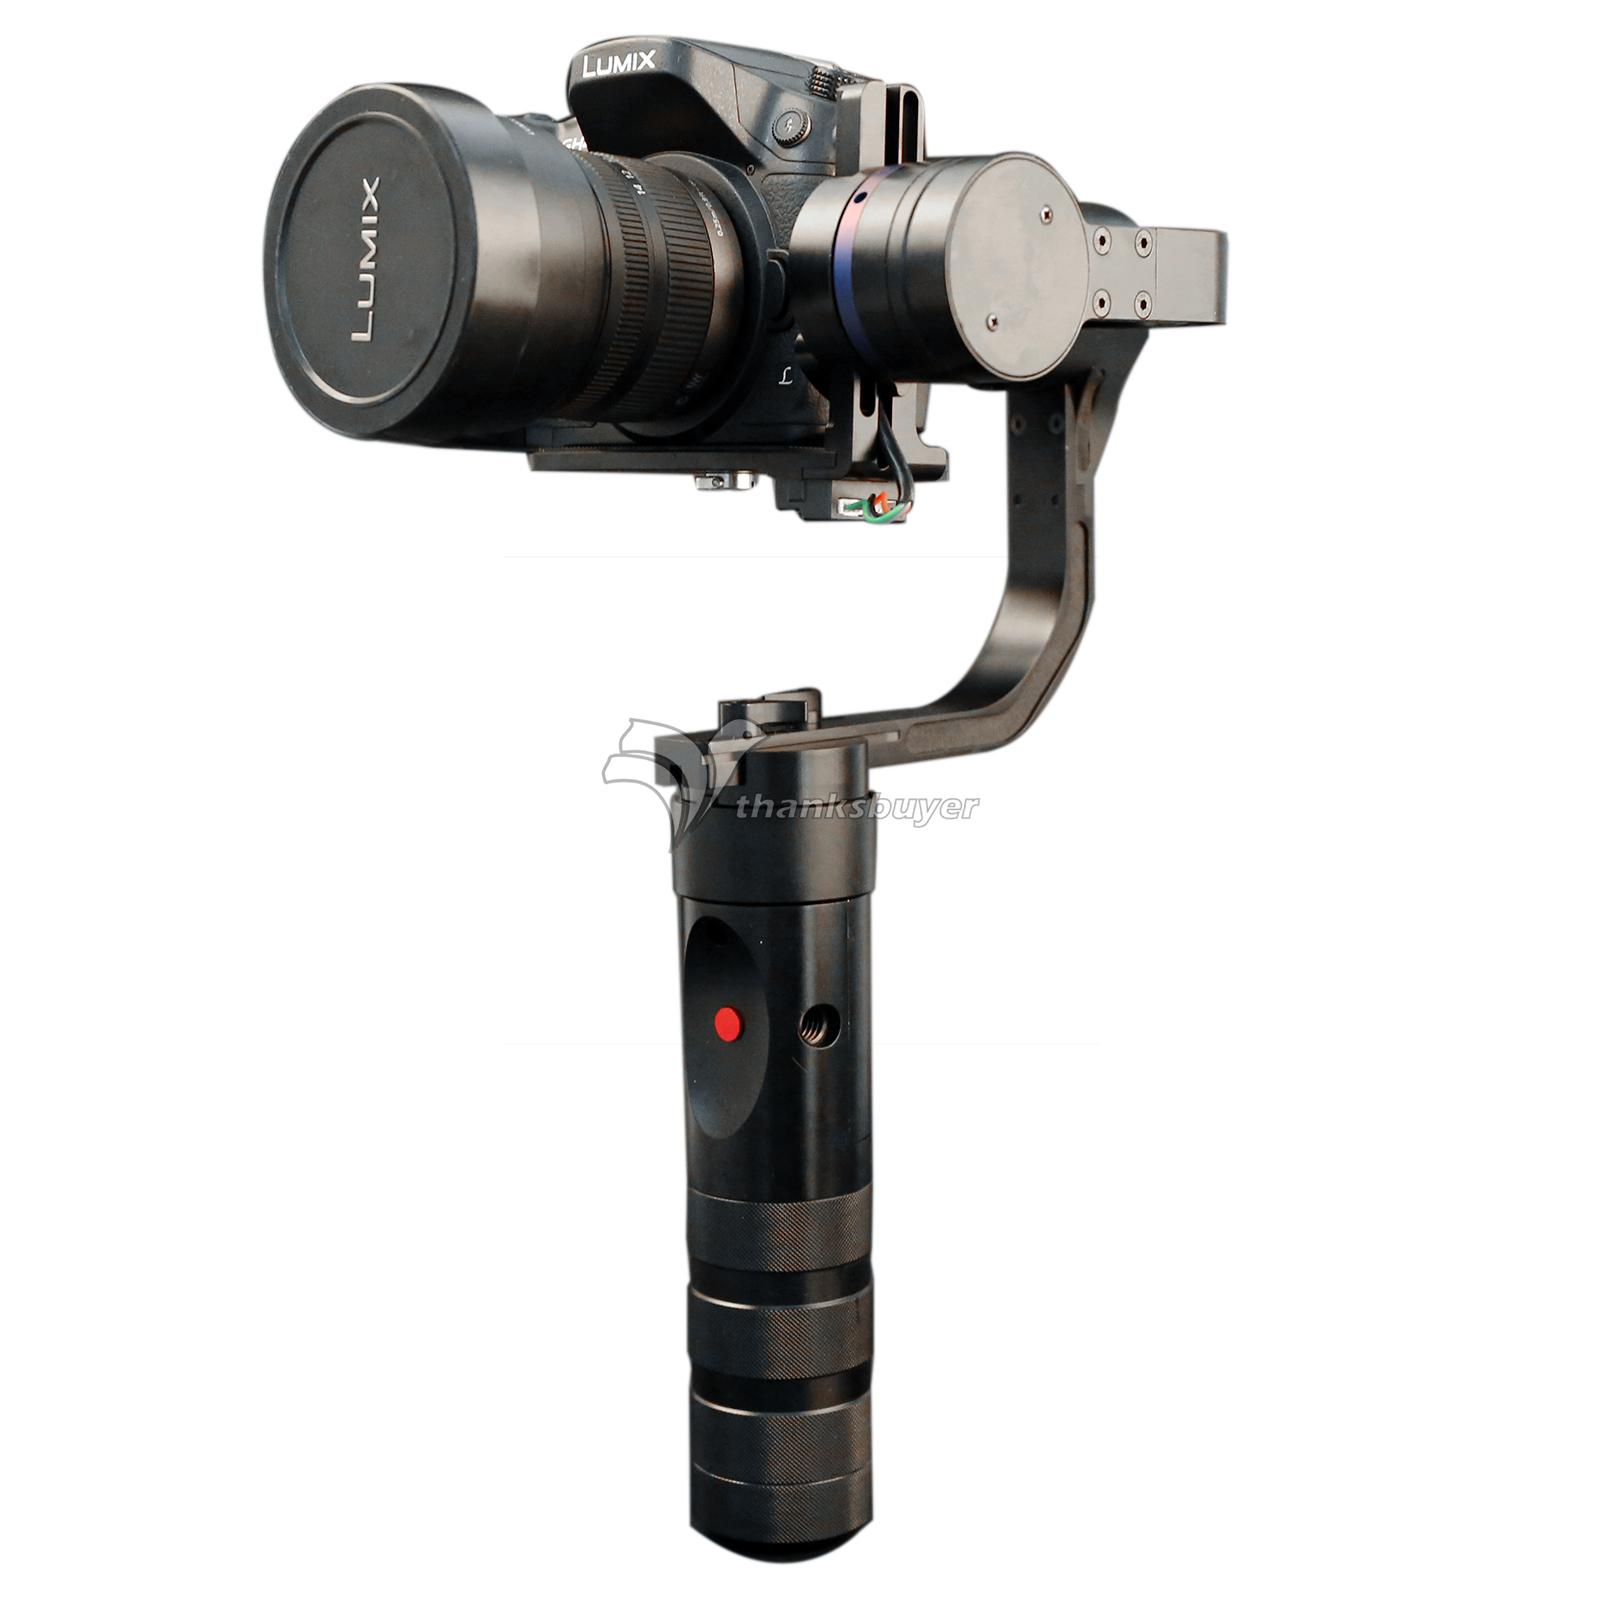 TopSky MD1 MX1 PK Nebula 4000 Handheld 3 Axis Gyroscope Stabilizer Brushless Gimbal for A7S GH4 Micro DSLR Camera BMPCC afi vs 3sd handheld 3 axle brushless handheld steady gimbal stabilizer for canon 5d 6d 7d for sony for gh4 dslr q20185